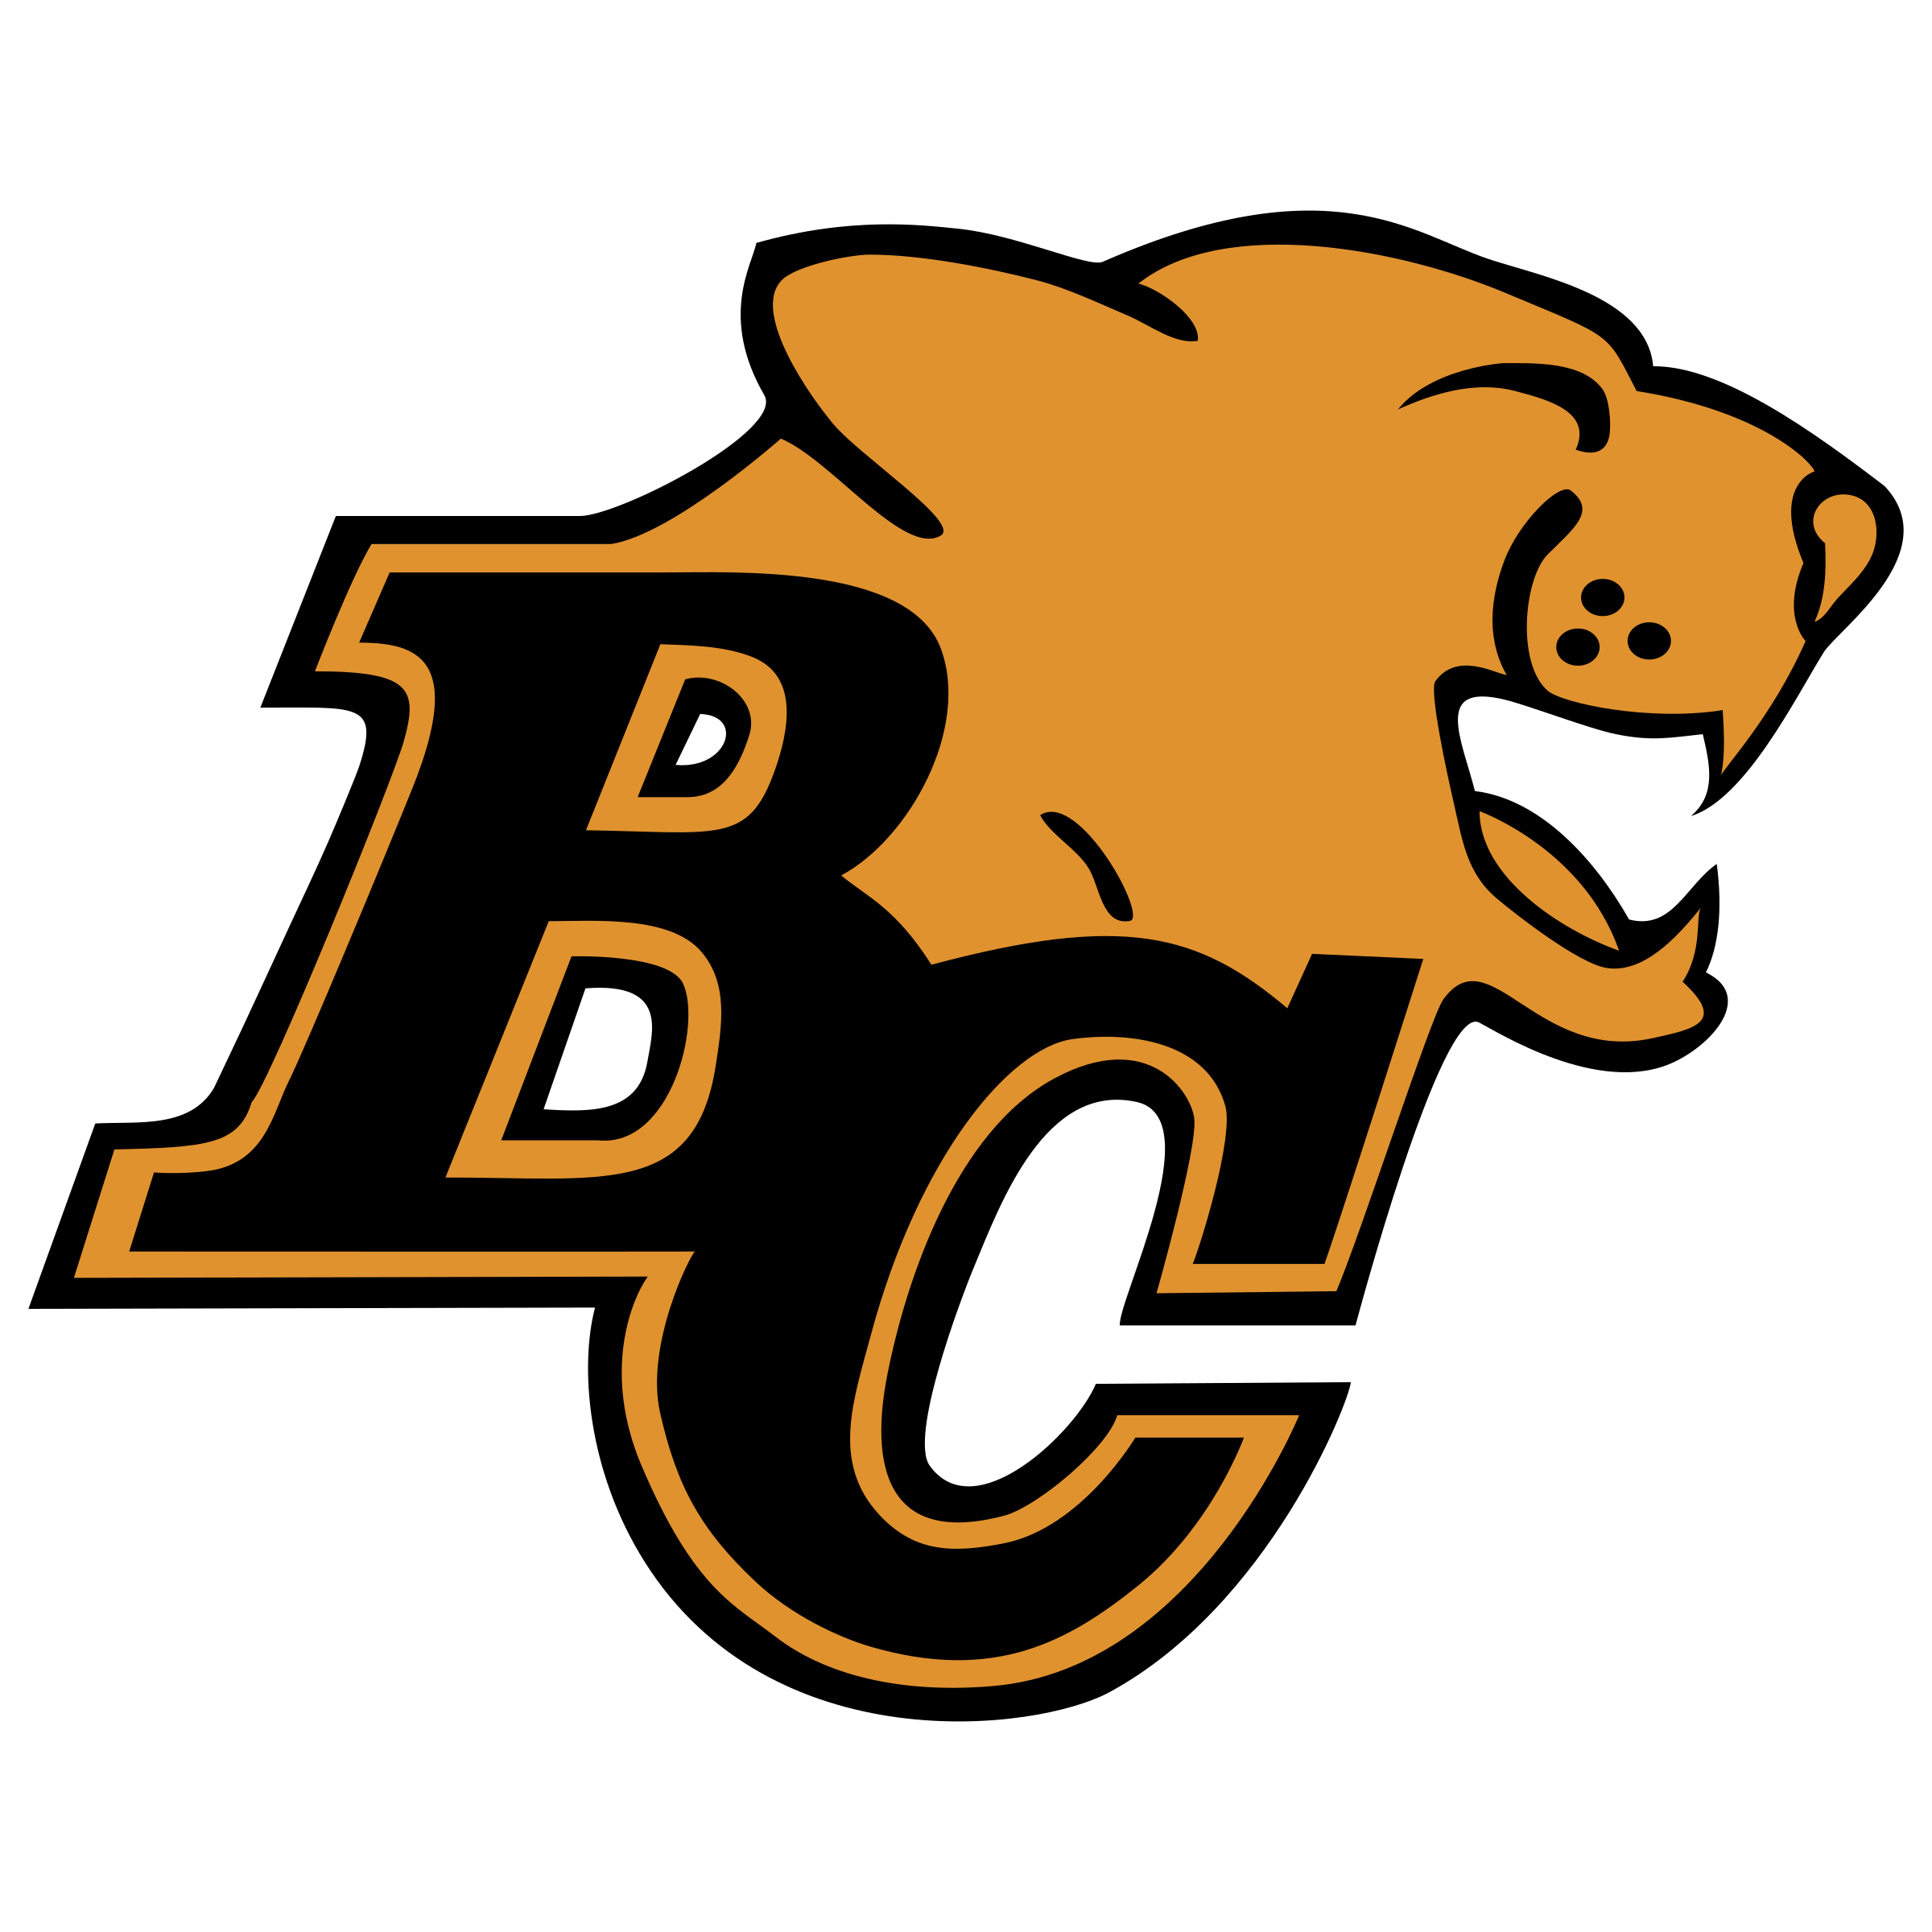 BC Lions 01 Logo PNG Transparent & SVG Vector.